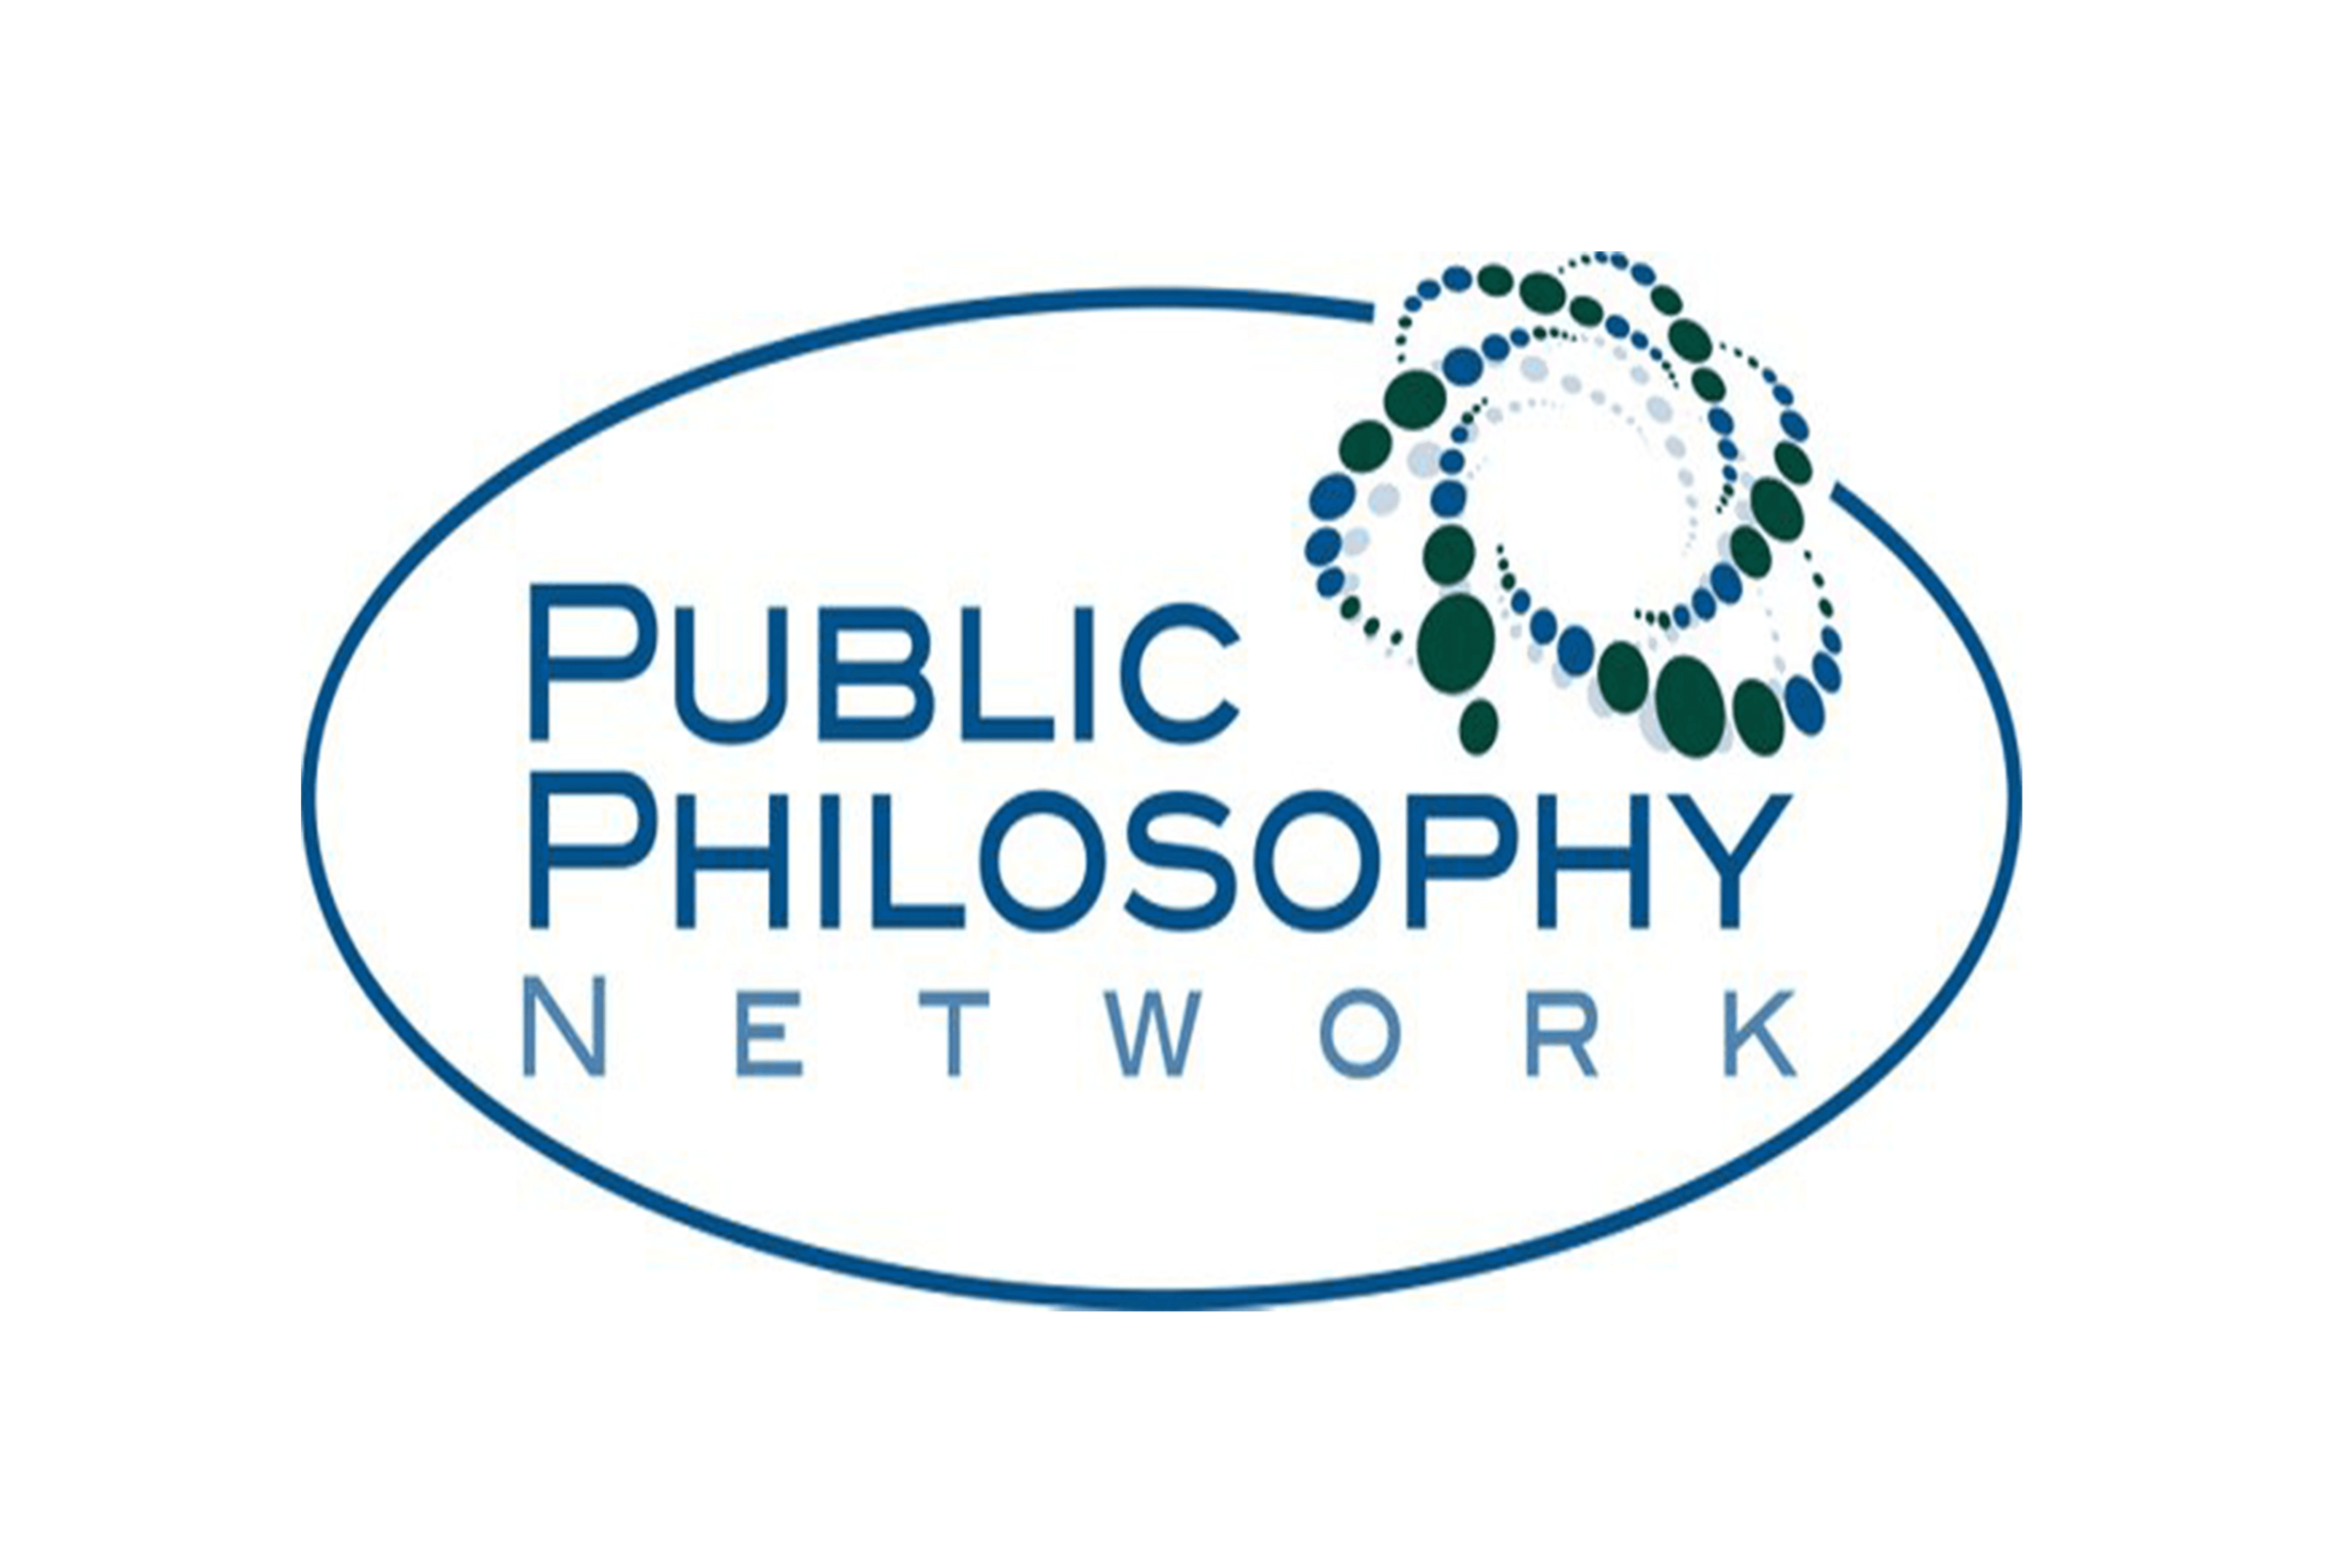 About - Find out what the Public Philosophy Network does, our mission, and our history.